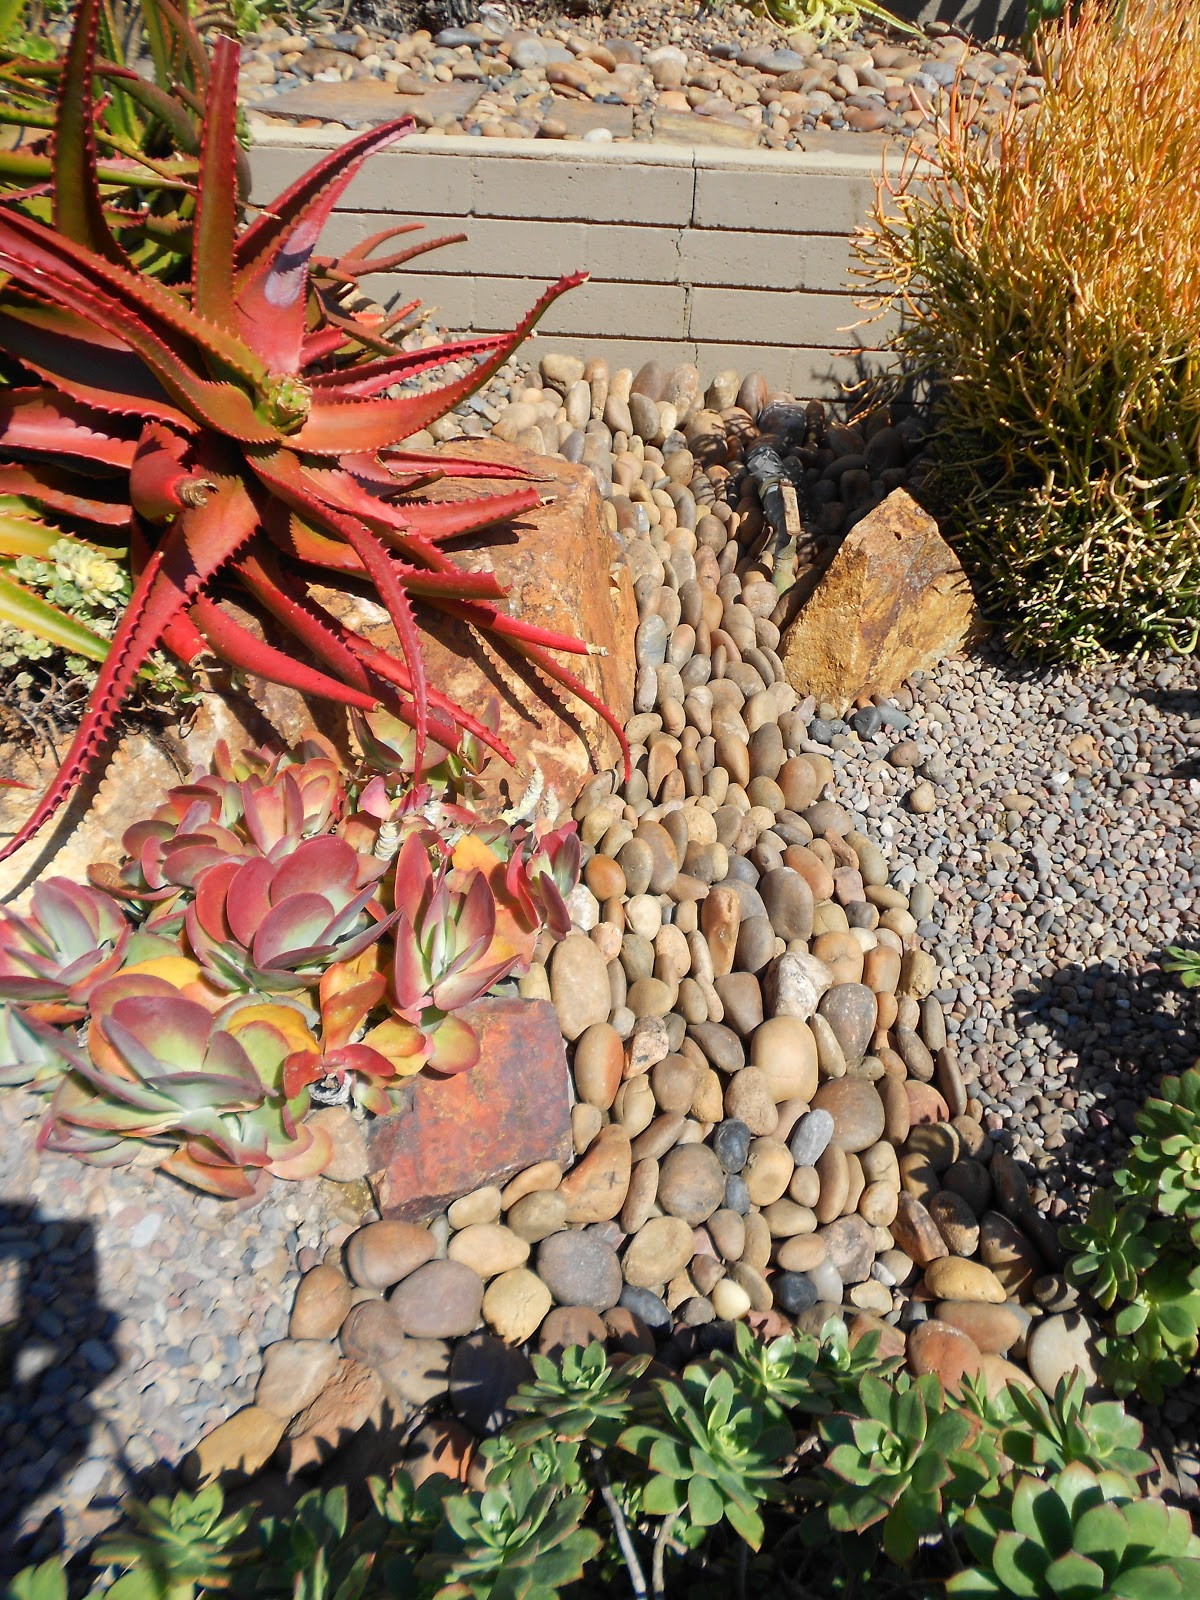 The Use Of Colorful Beach Pebble Gravels And Succulents To Create This Kind Movement Can Be Re Created For Your Rock Garden Gorgeous